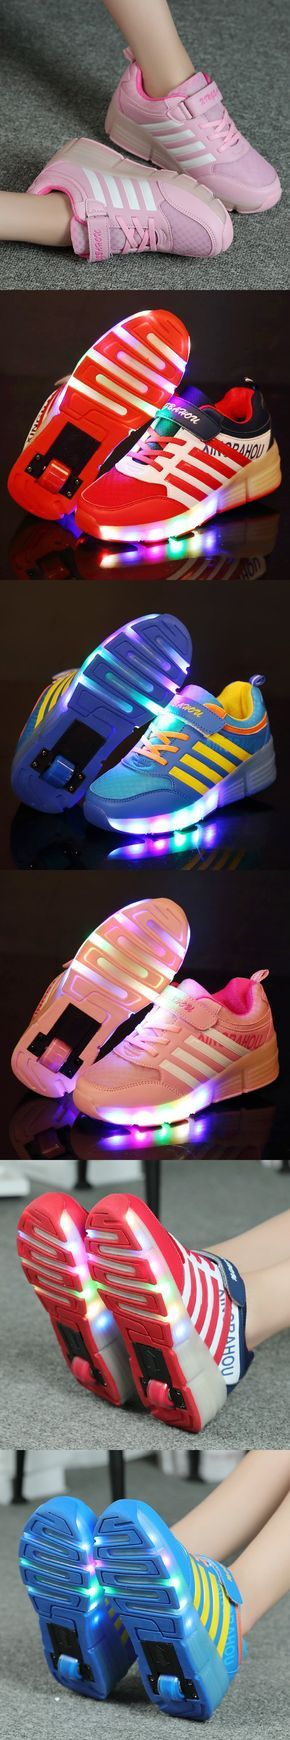 2016 Children Roller Sneaker With One Wheel LED Lighted Flashing Roller Skates Kids Boy Girl Shoes Zapatillas Fashion $23.8